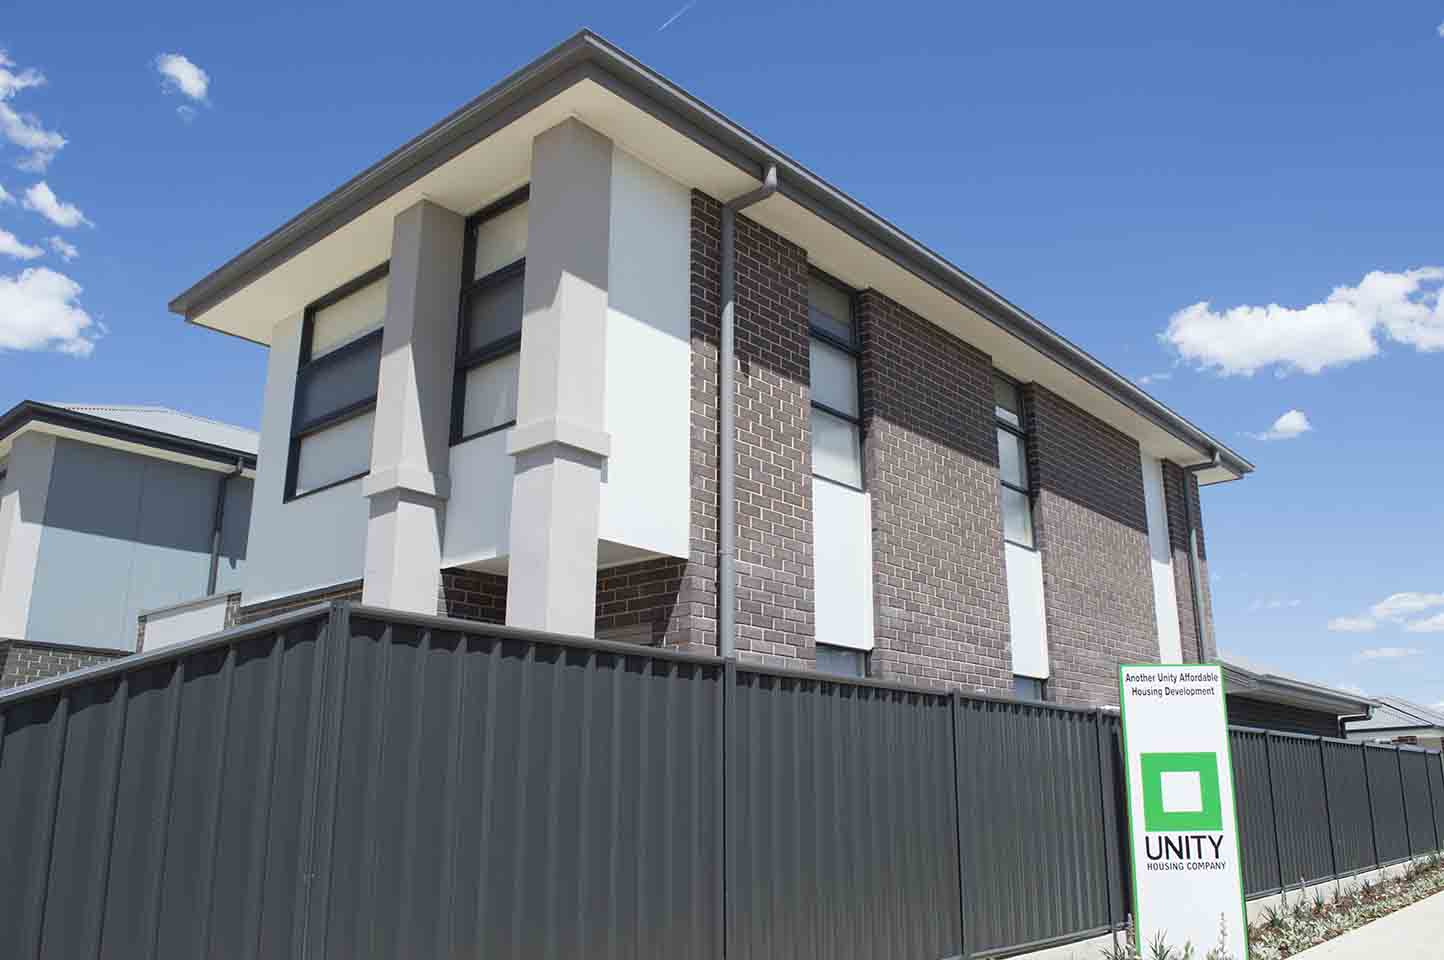 Blair Athol properties launched